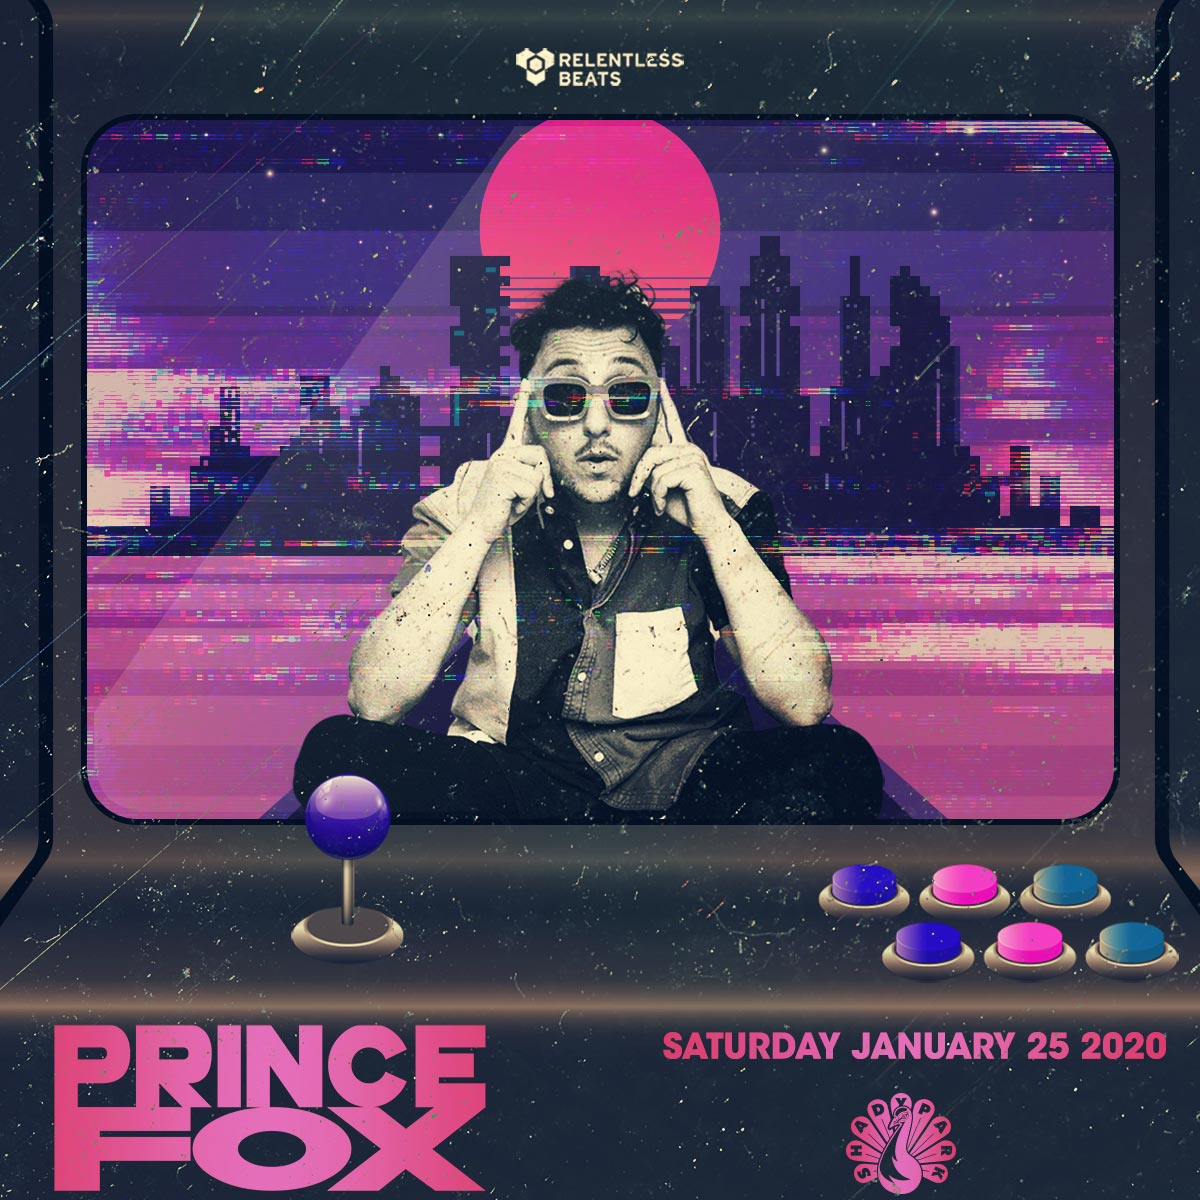 Flyer for Prince Fox